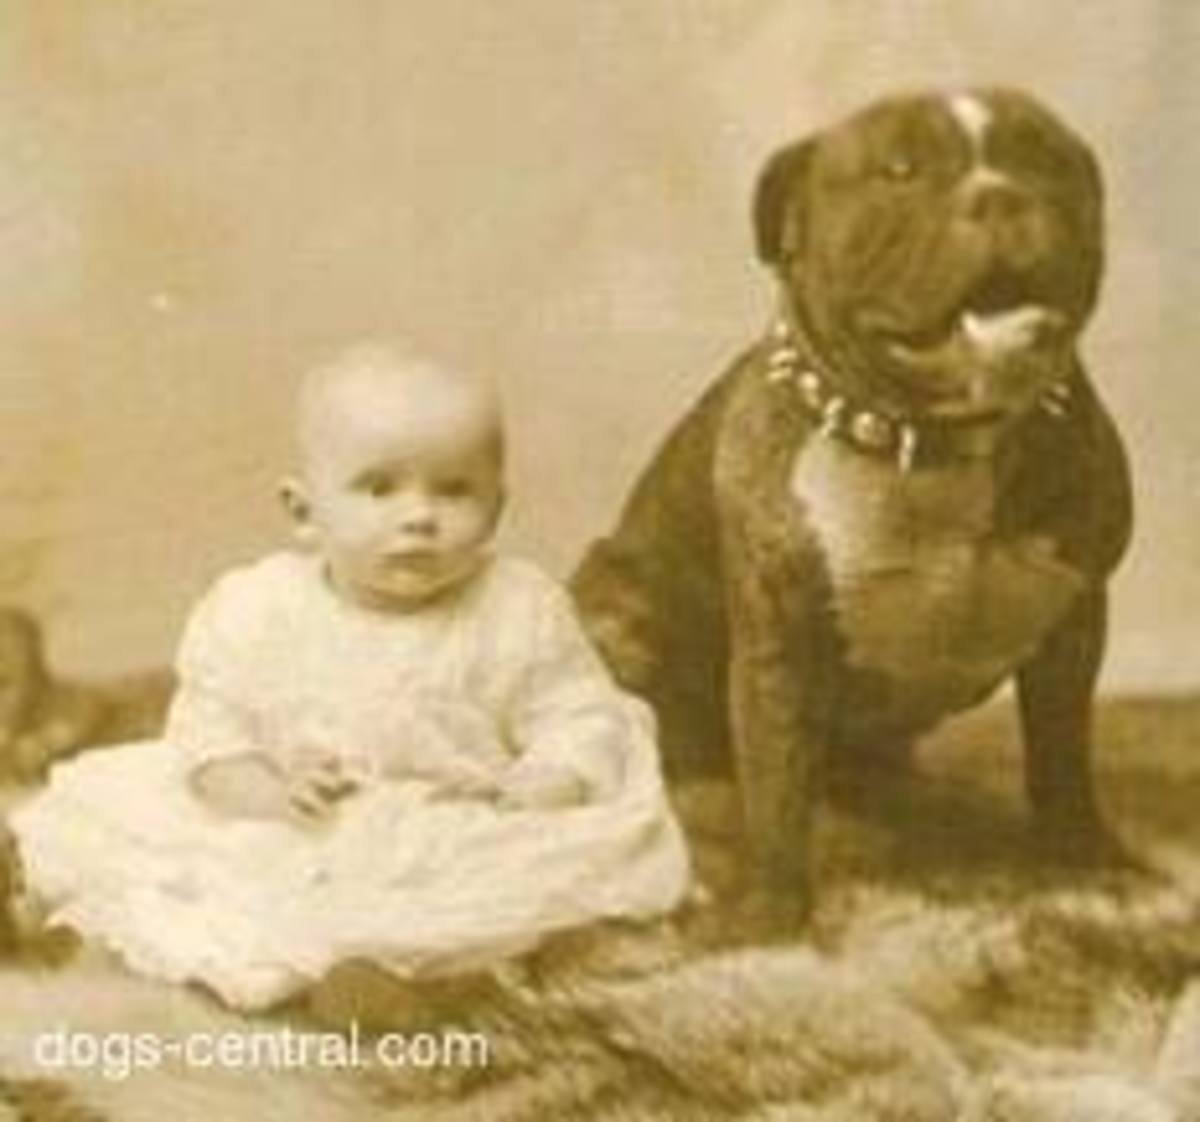 The Pit Bull Dog - Once Known as the Nanny Dog - What Happened?